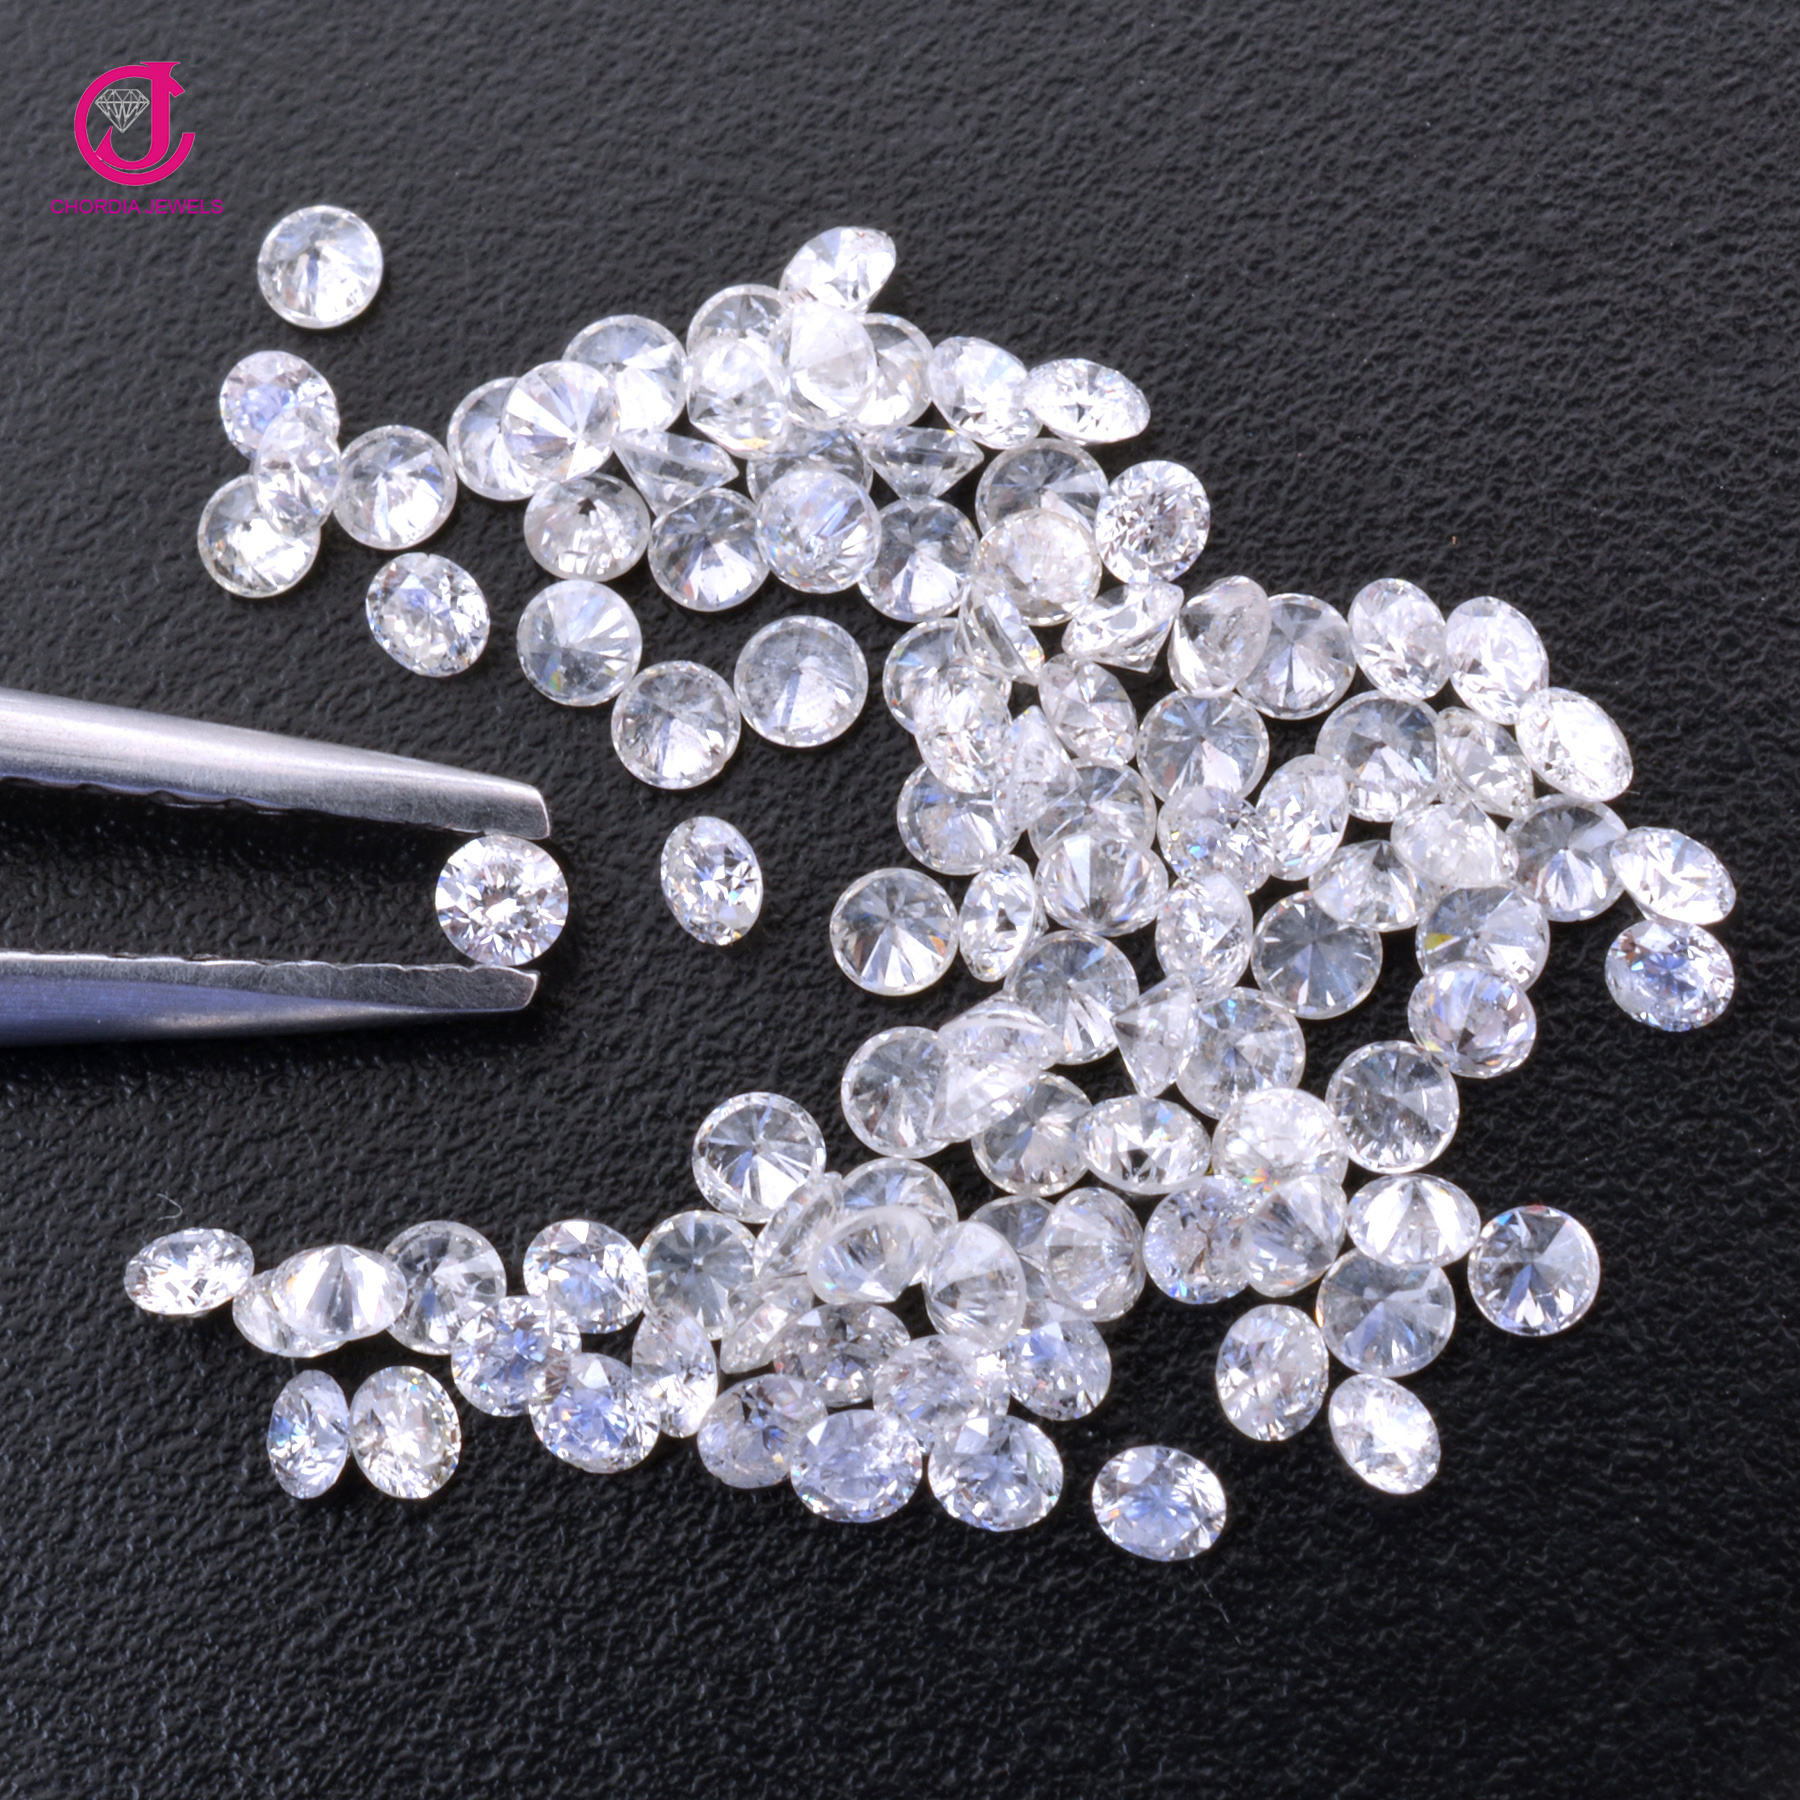 1.6MM - 2MM 100% Natural I1 Purity White Diamond Faceted Round Cut Loose Diamond For Jewelry At Wholesale Price